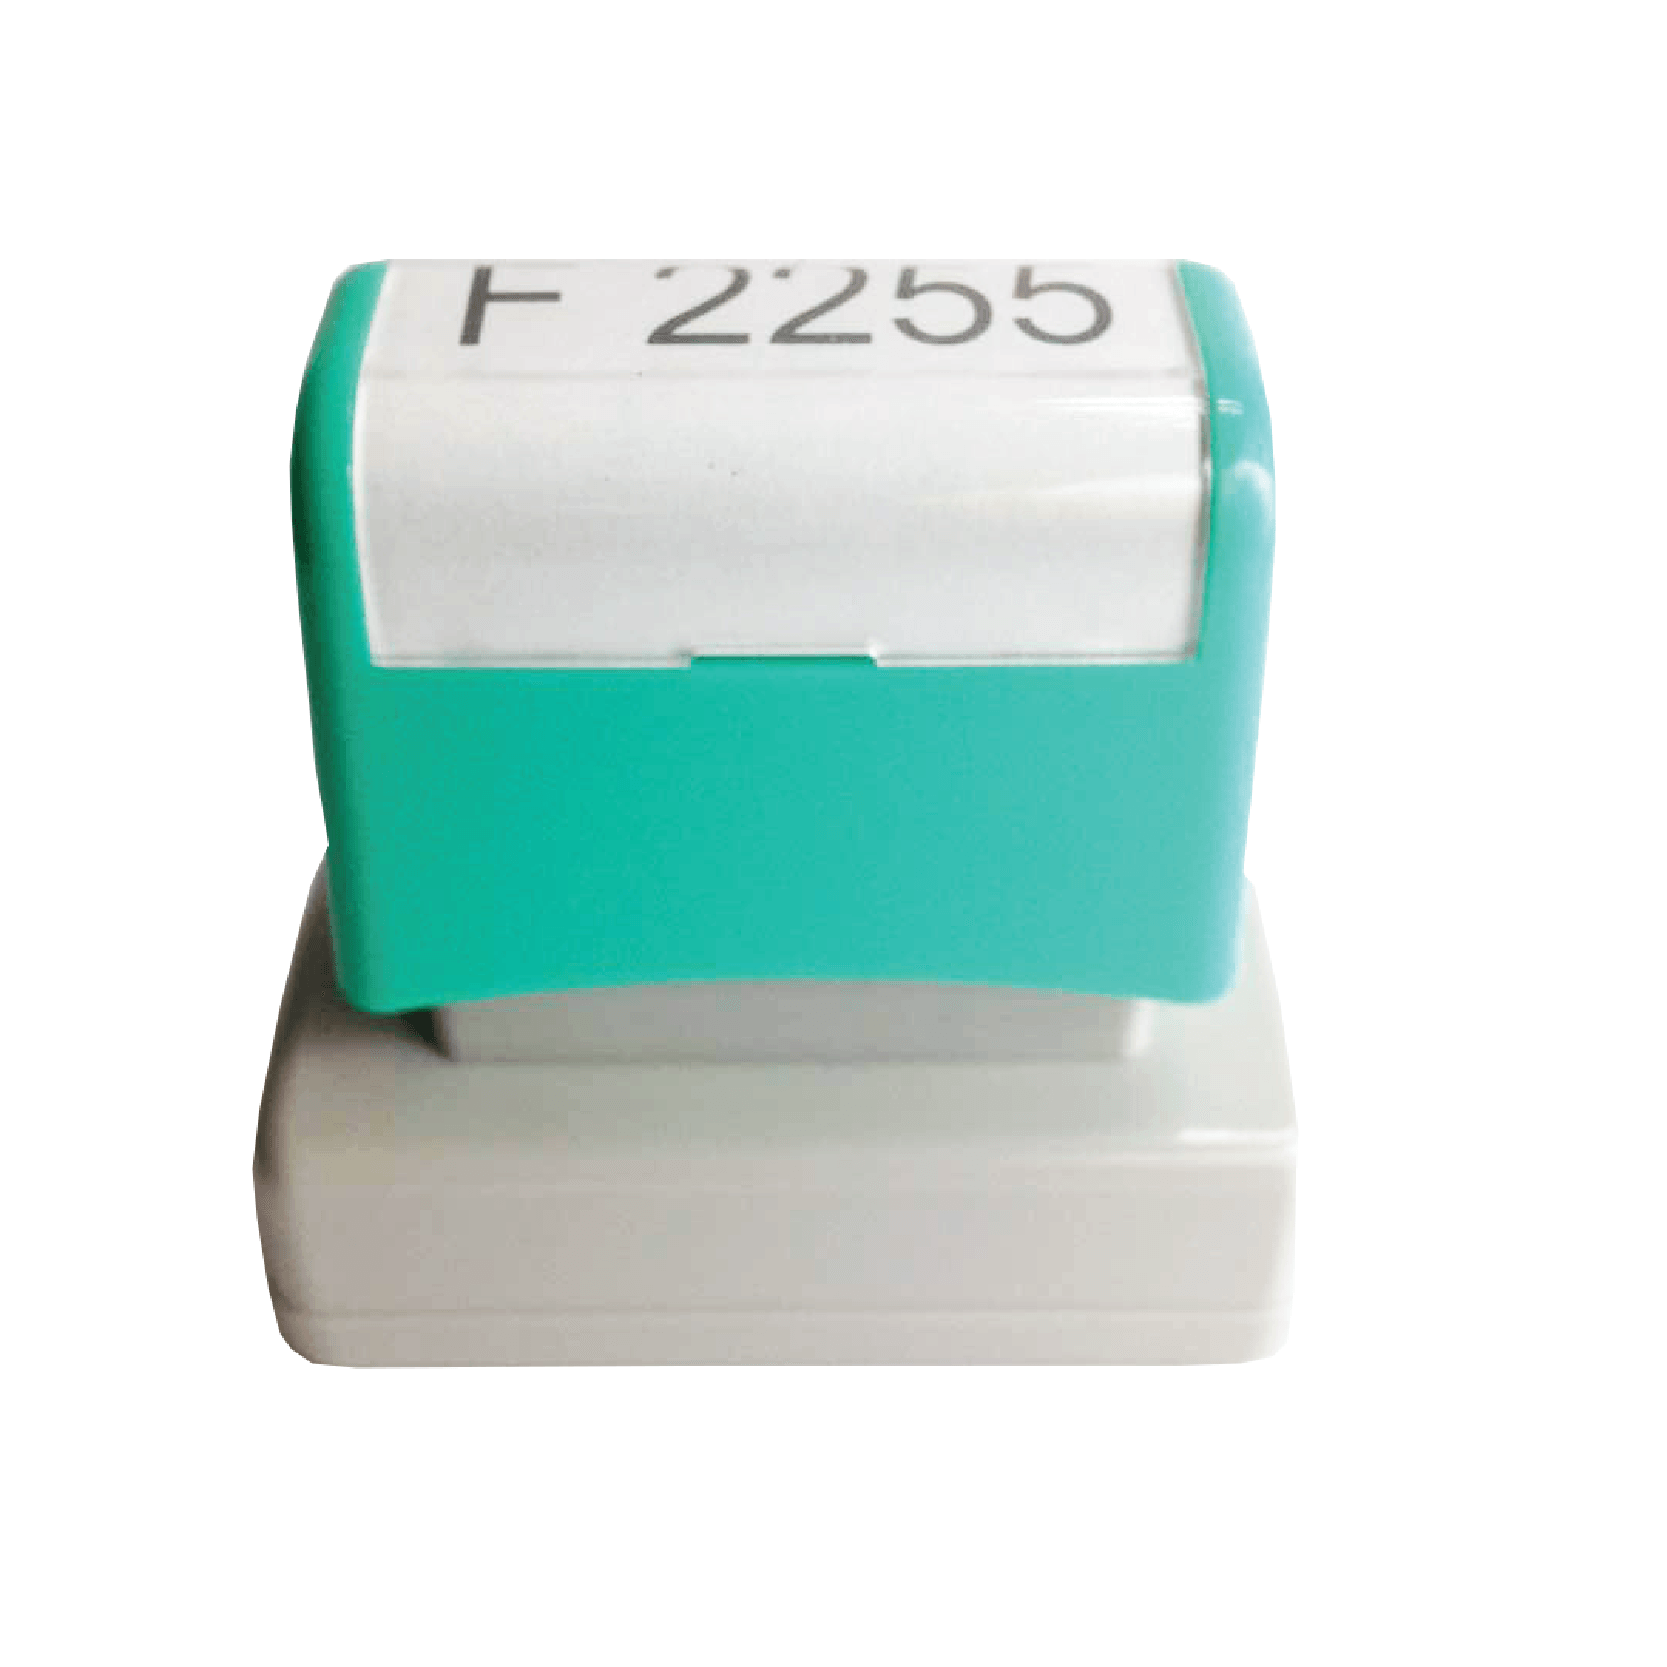 Flash Stamp F2255